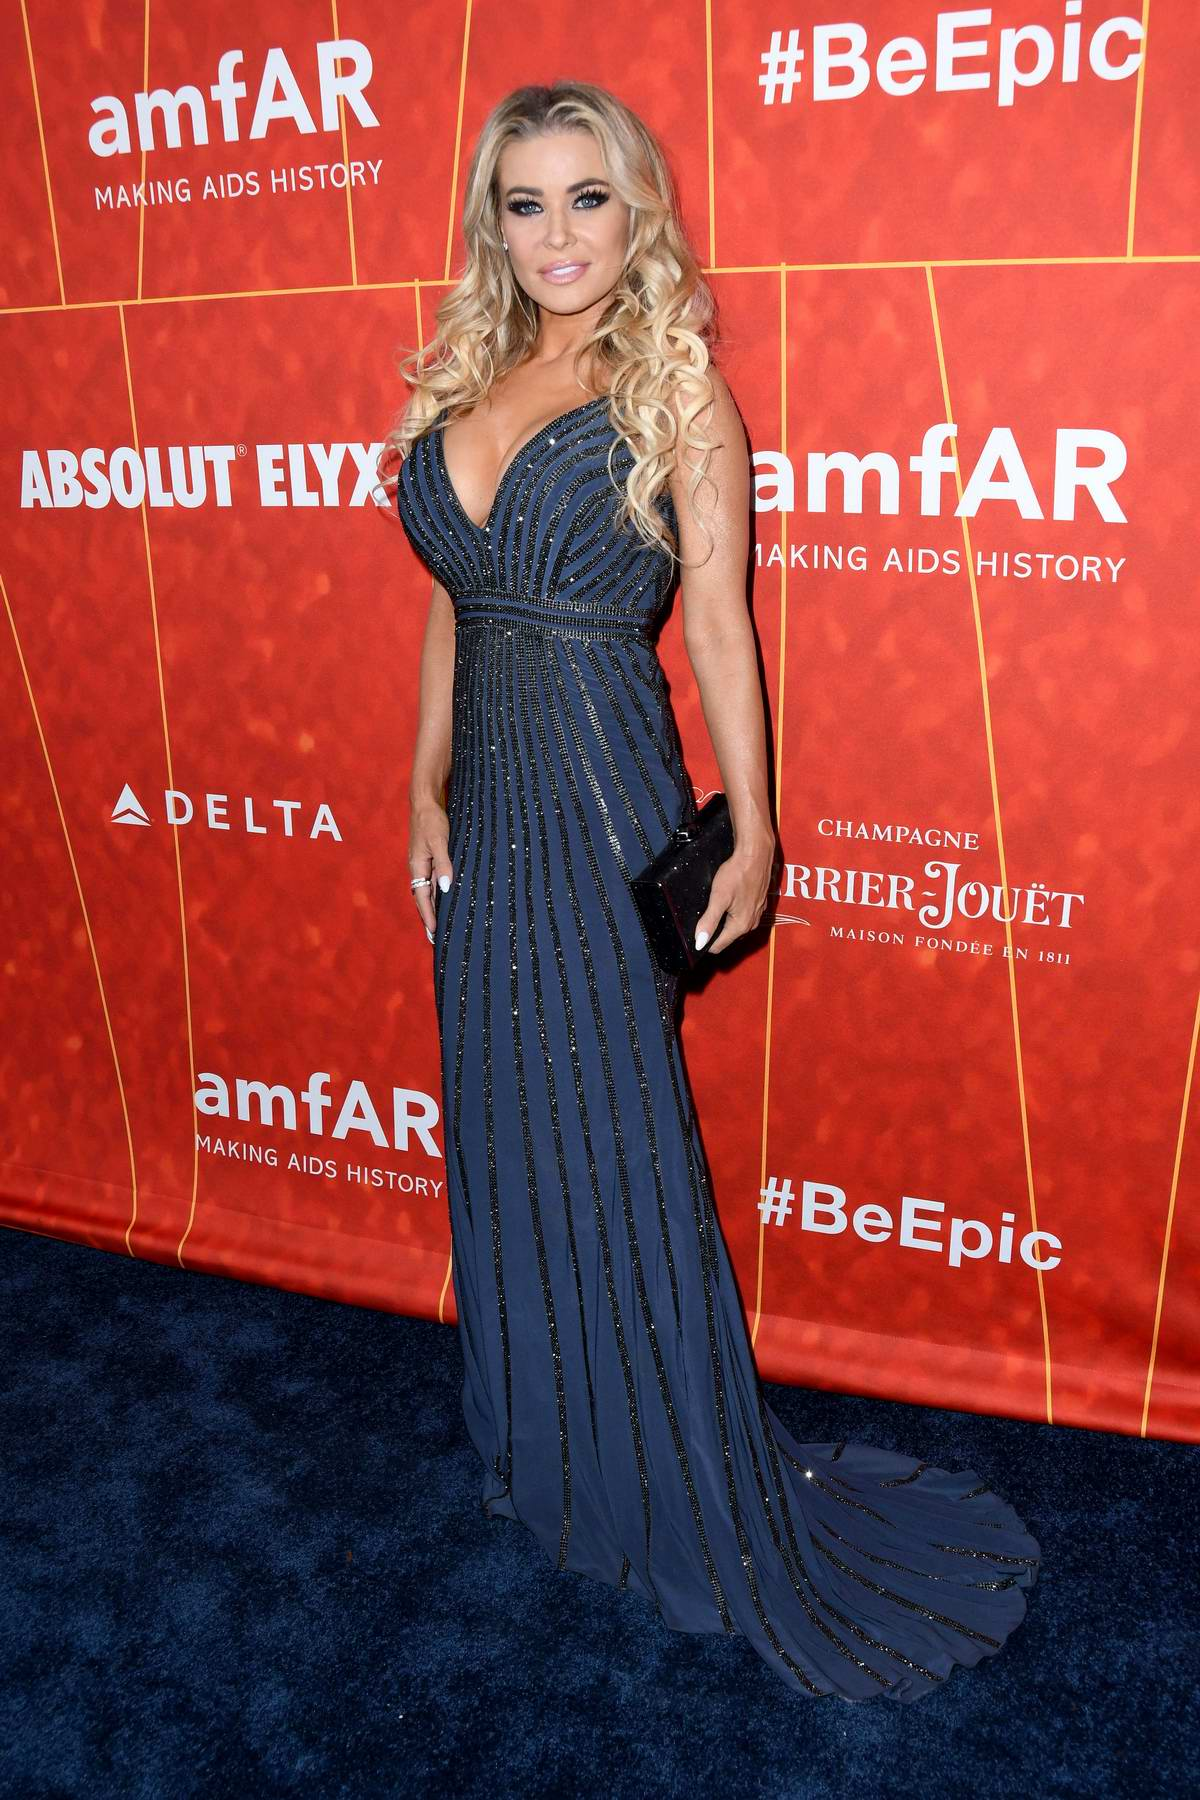 Carmen Electra attends 2018 amfAR Inspiration Gala at Wallis Annenberg Center for the Performing Arts in Beverly Hills, Los Angeles